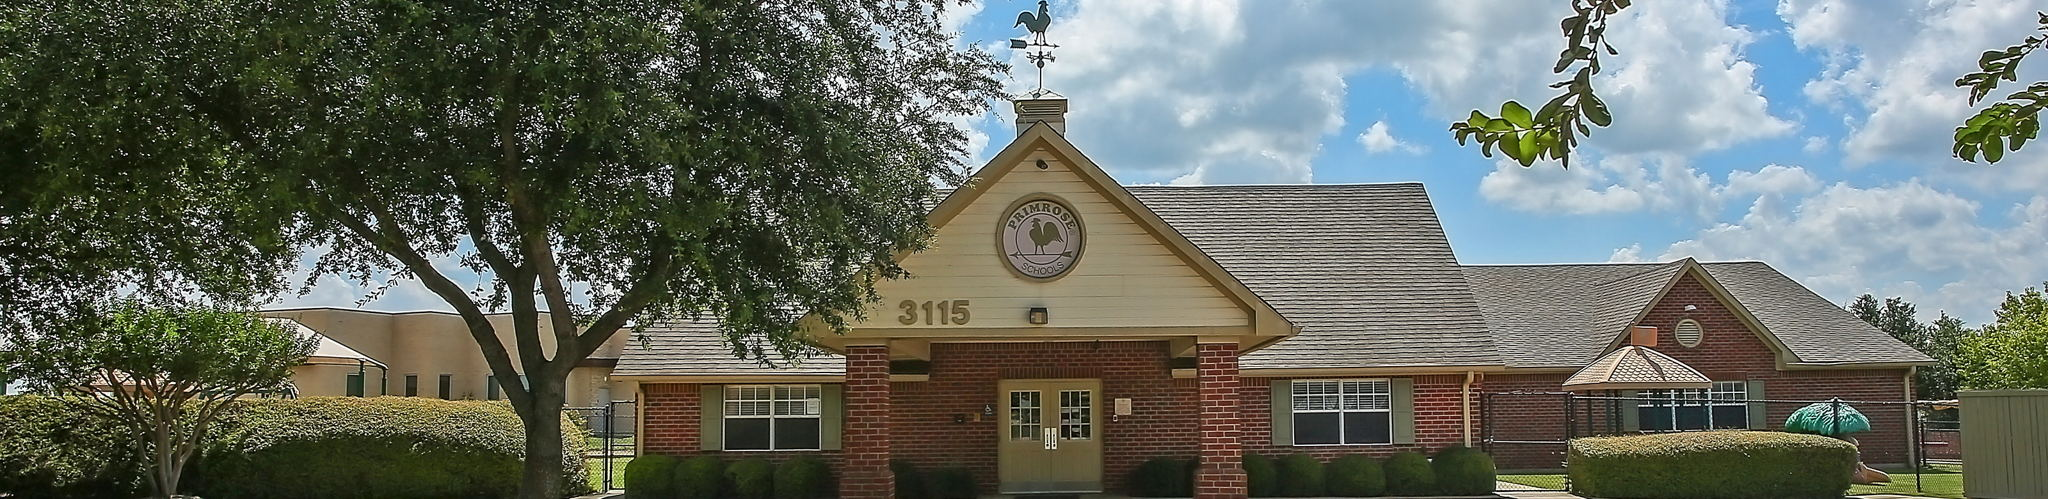 Exterior of a Primrose School of Rockwall